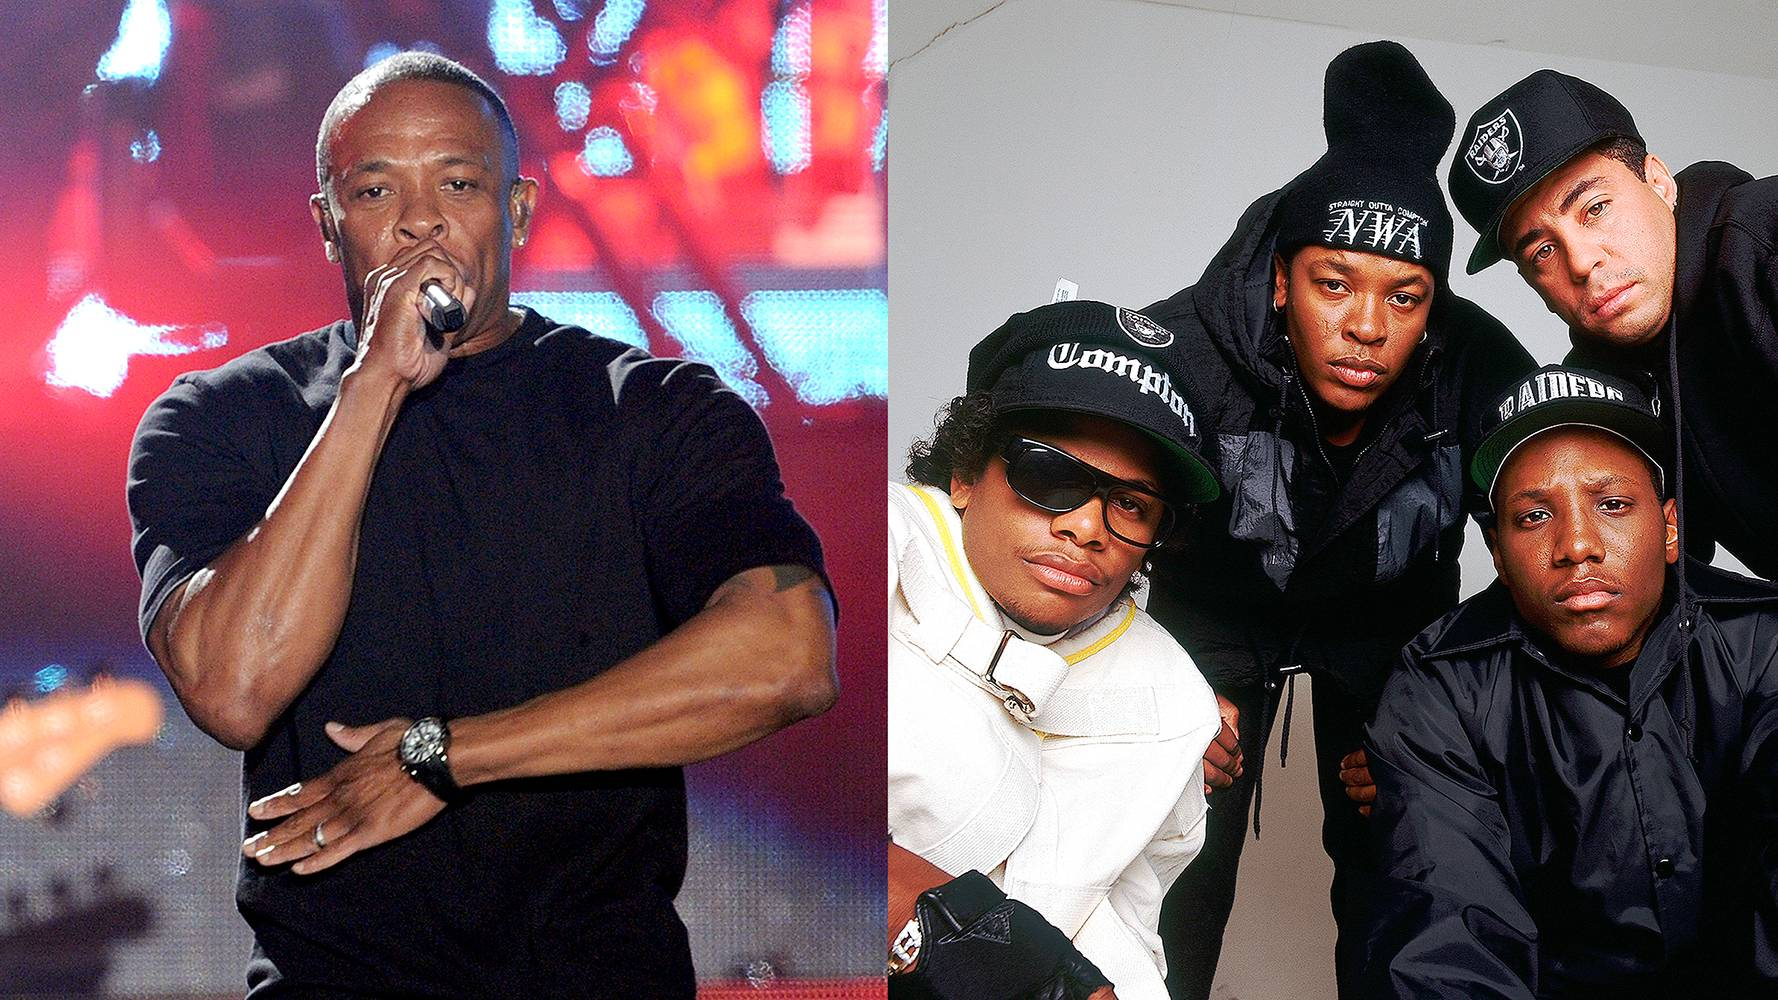 Dr. Dre | NWA  - After EFIL4ZAGGIN, Dr. Dre departed from NWAfor good and restarted his career with Death Row Records in 1993 along with Michel'le and The D.O.C. Since the departure, Dr. Dre is on his way to becoming hip-hop's first billionaire with ventures like Beats by Dre and the Straight Outta Compton movie set to premiere in theatres in August 2015. (Photos from Left: Kevin Winter/Getty Images for Coachella, Lynn Goldsmith/Corbis)